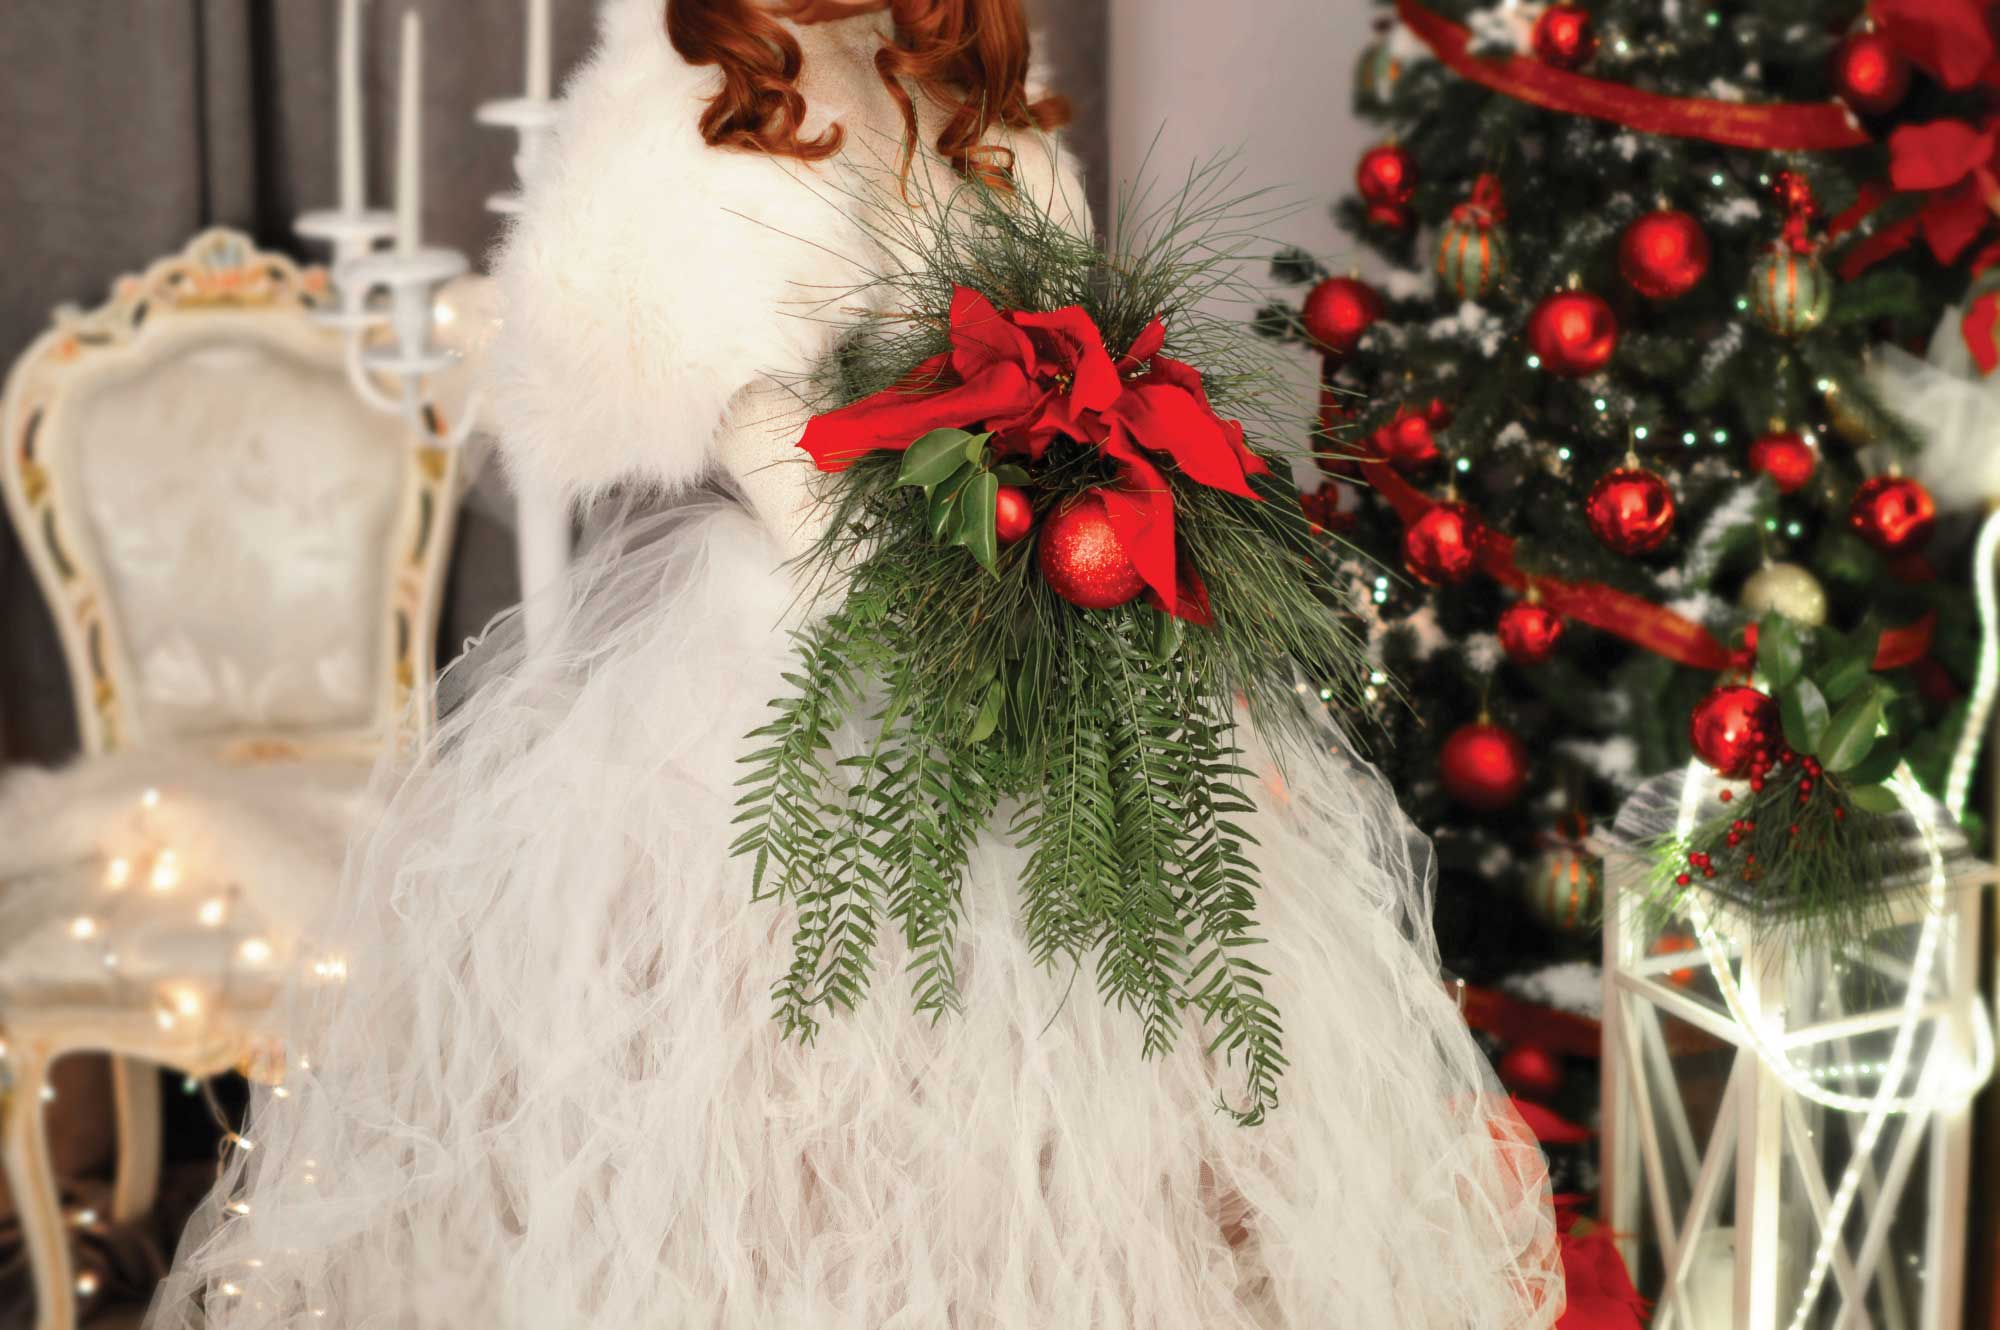 Crazy For Christmas.Crazy For Christmas Inspiration For A Winter Wedding To